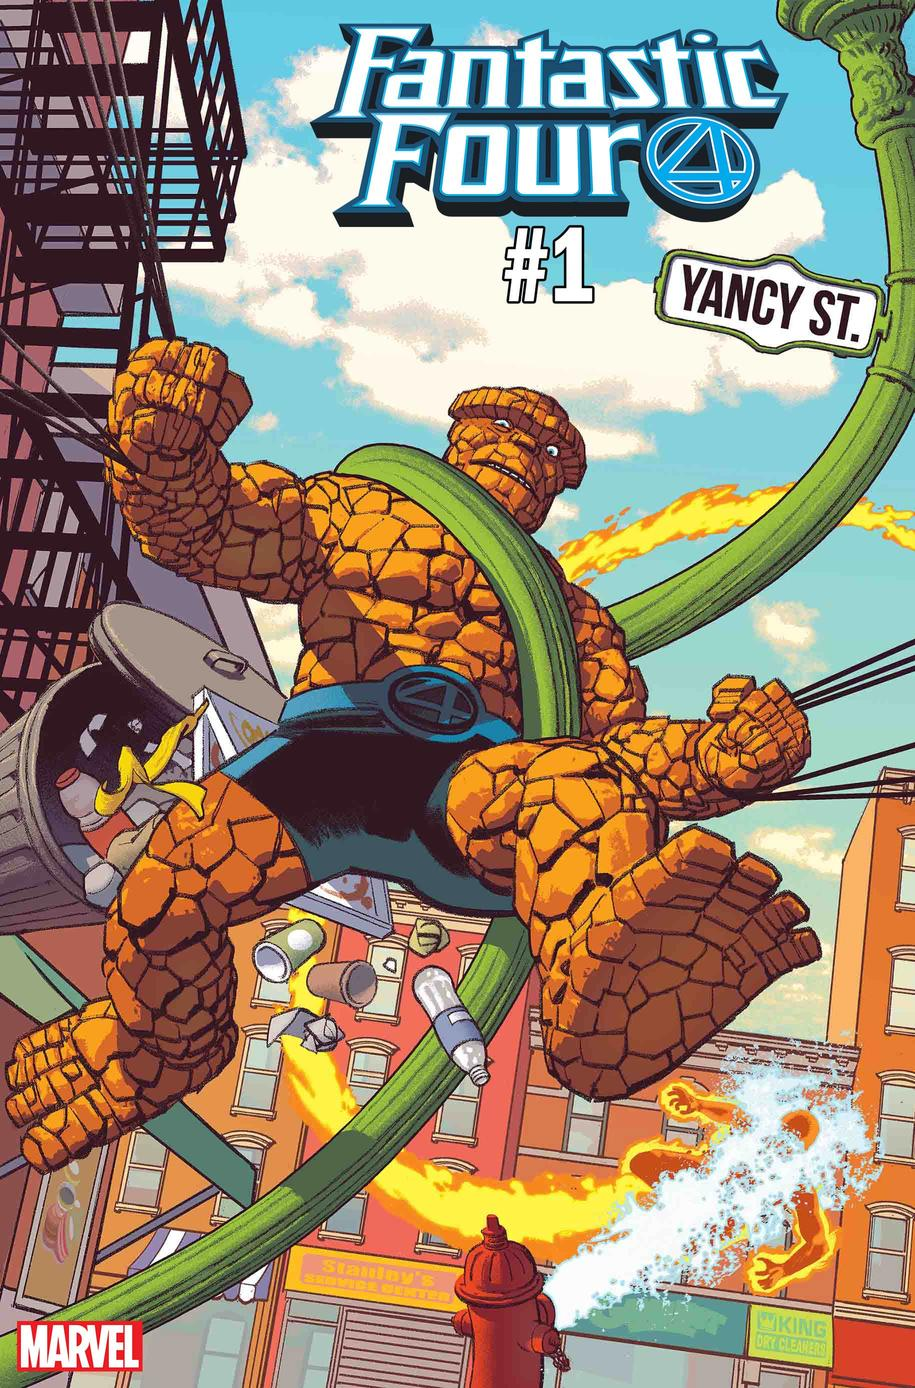 Fantastic Four Yancy Street